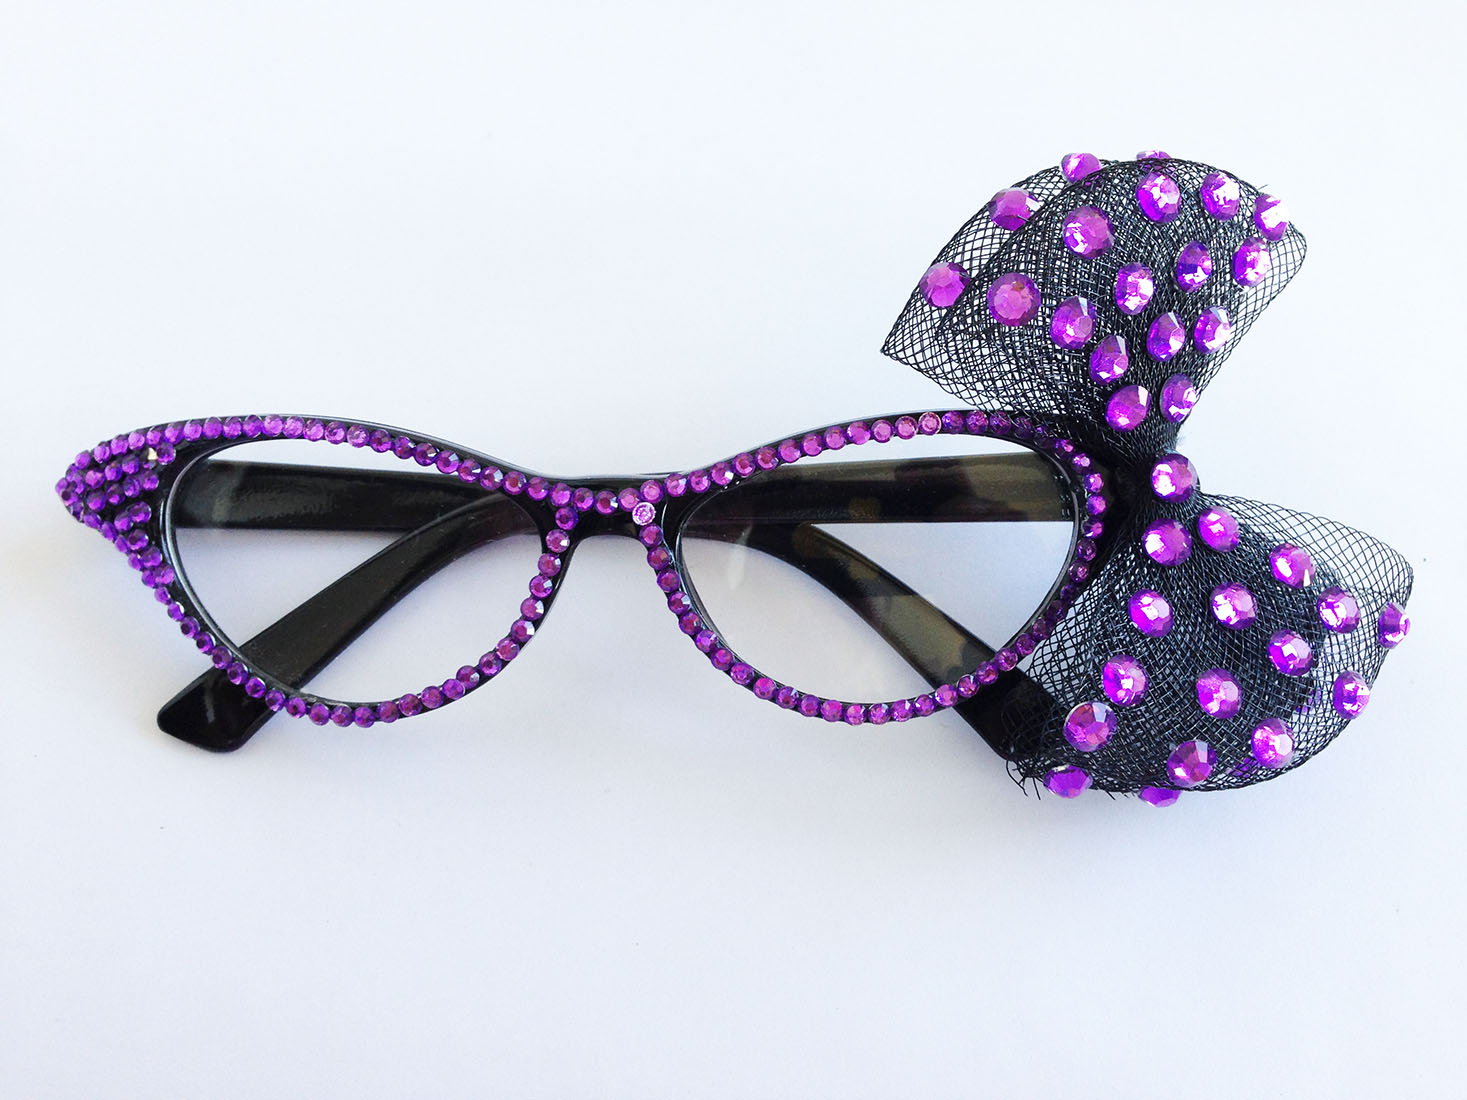 1pc-Xmas-Women-Girl-Glasses-Bowknot-Dance-Party-Costume-Fancy-Dress-Accessories